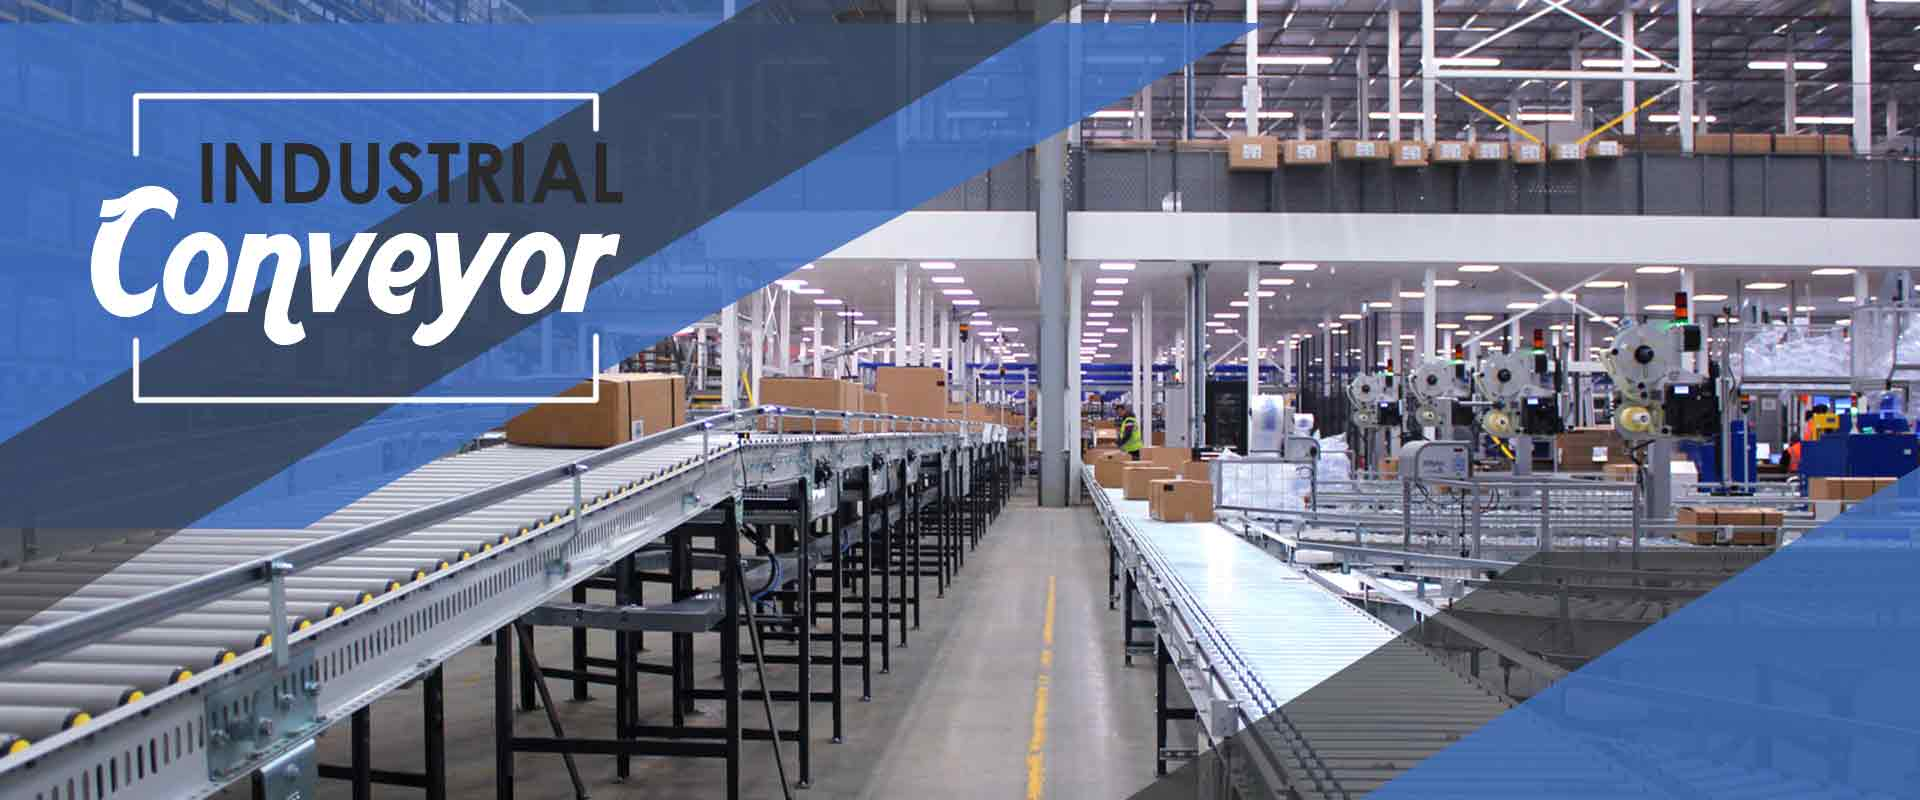 Industrial Conveyor Manufacturers In New Mexico